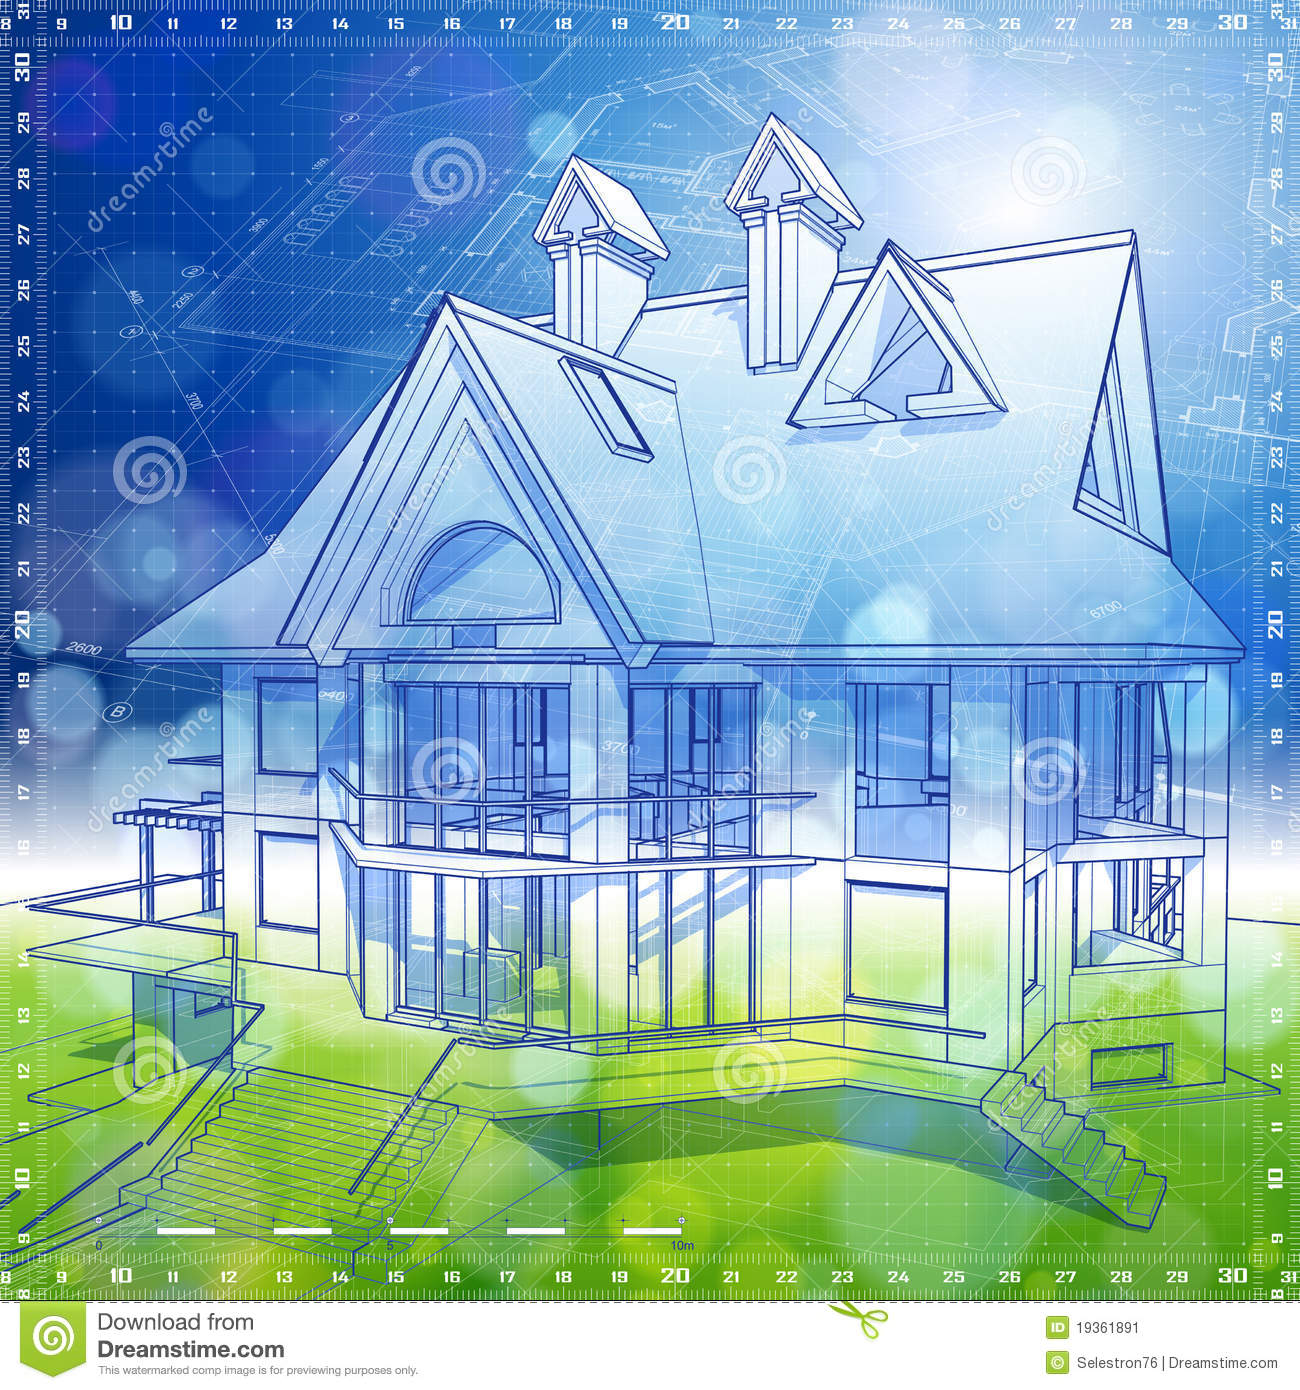 Architecture House And: Ecology Architecture Design: House, Plans Stock Image